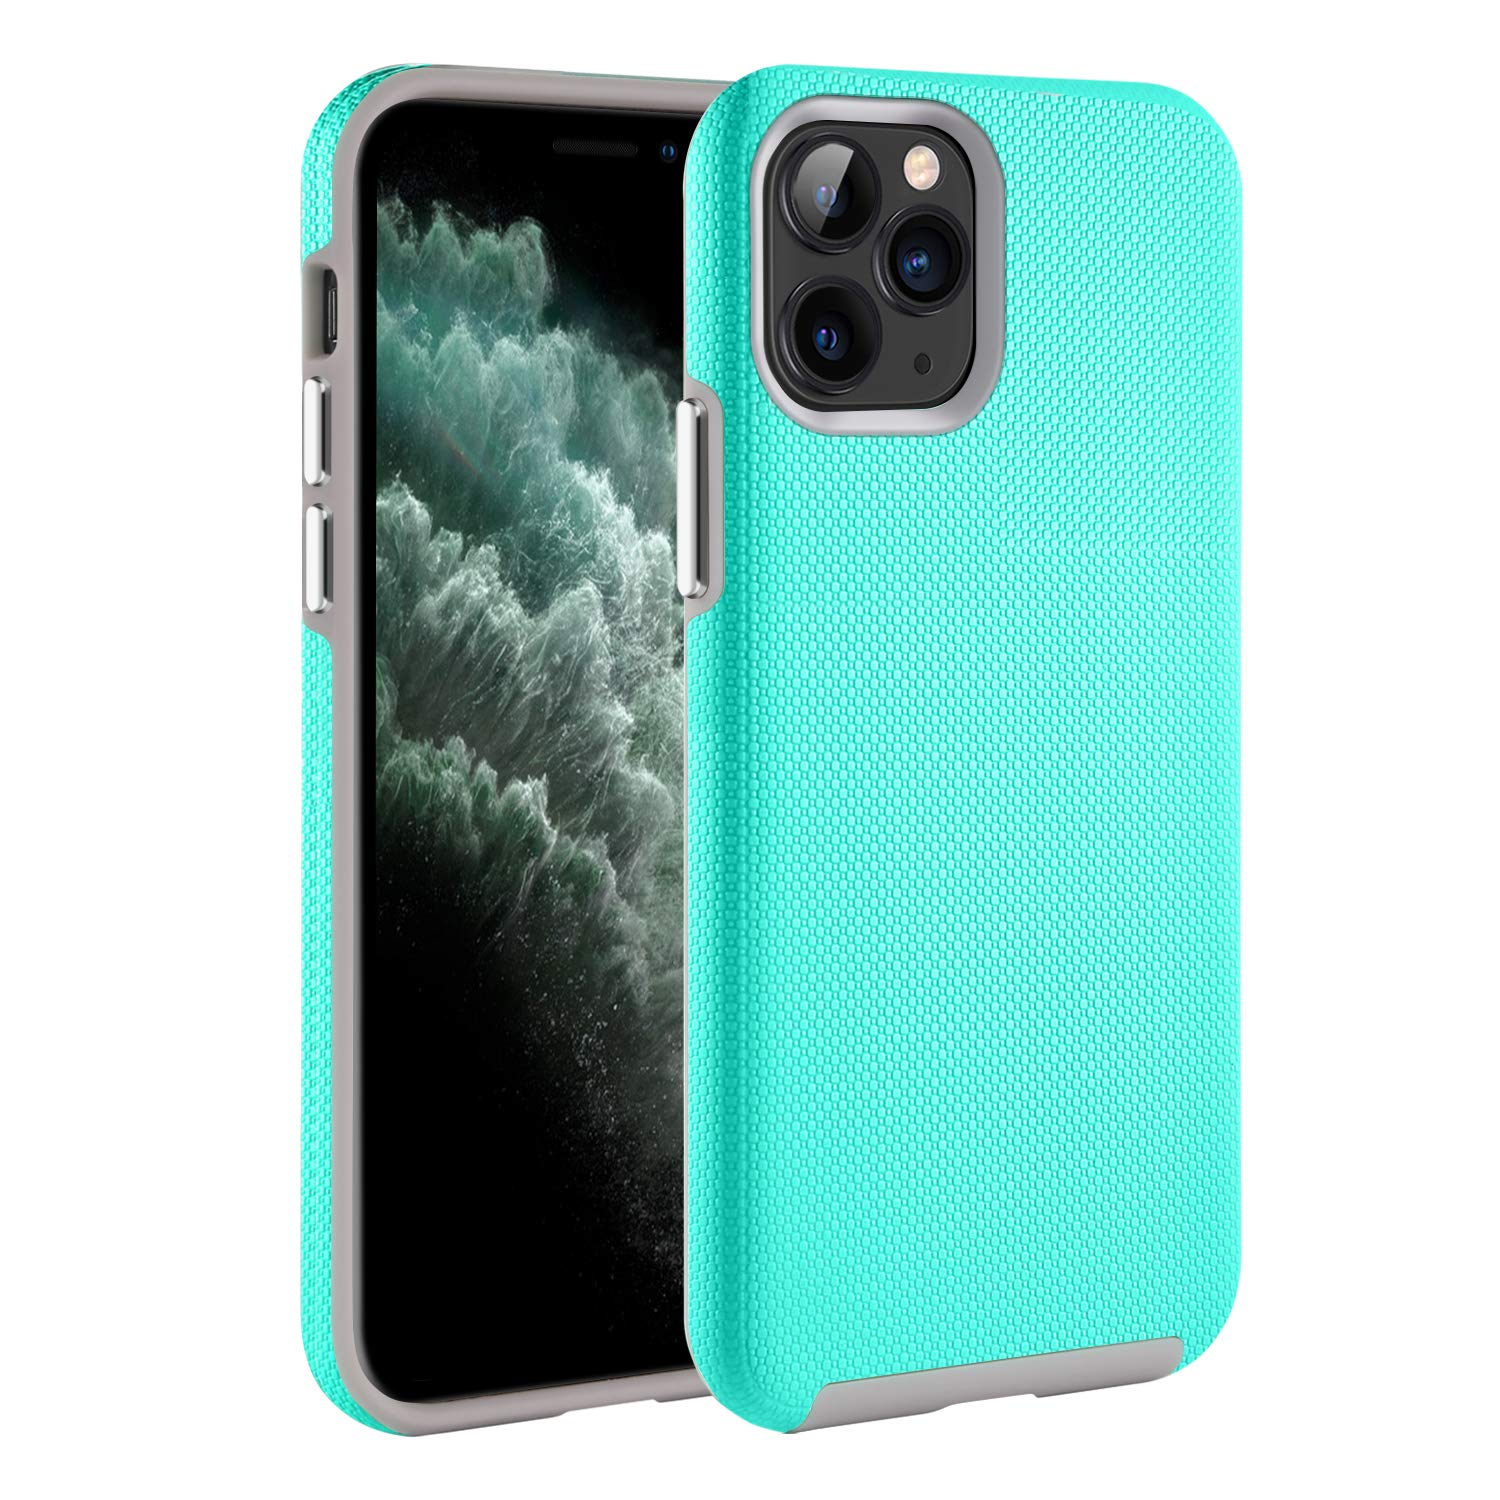 """BENTOBEN iPhone 11 Pro Case, Dual Layer Rugged Impact Resistant Protective Case for iPhone 11 Pro 5.8"""", Mint Green"""